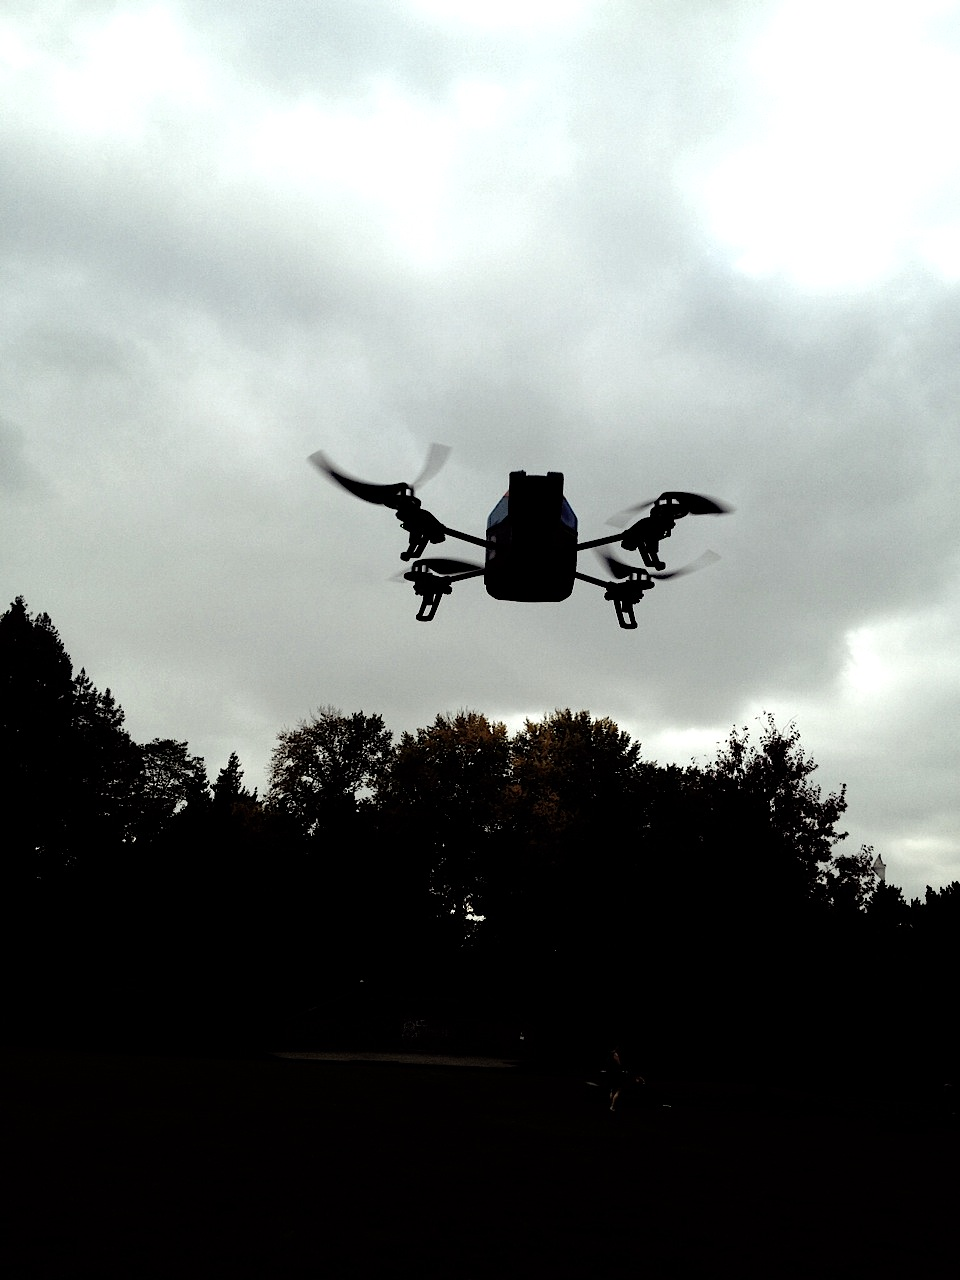 We have been drone testing and experimenting as well. Here's the drone looking at us....